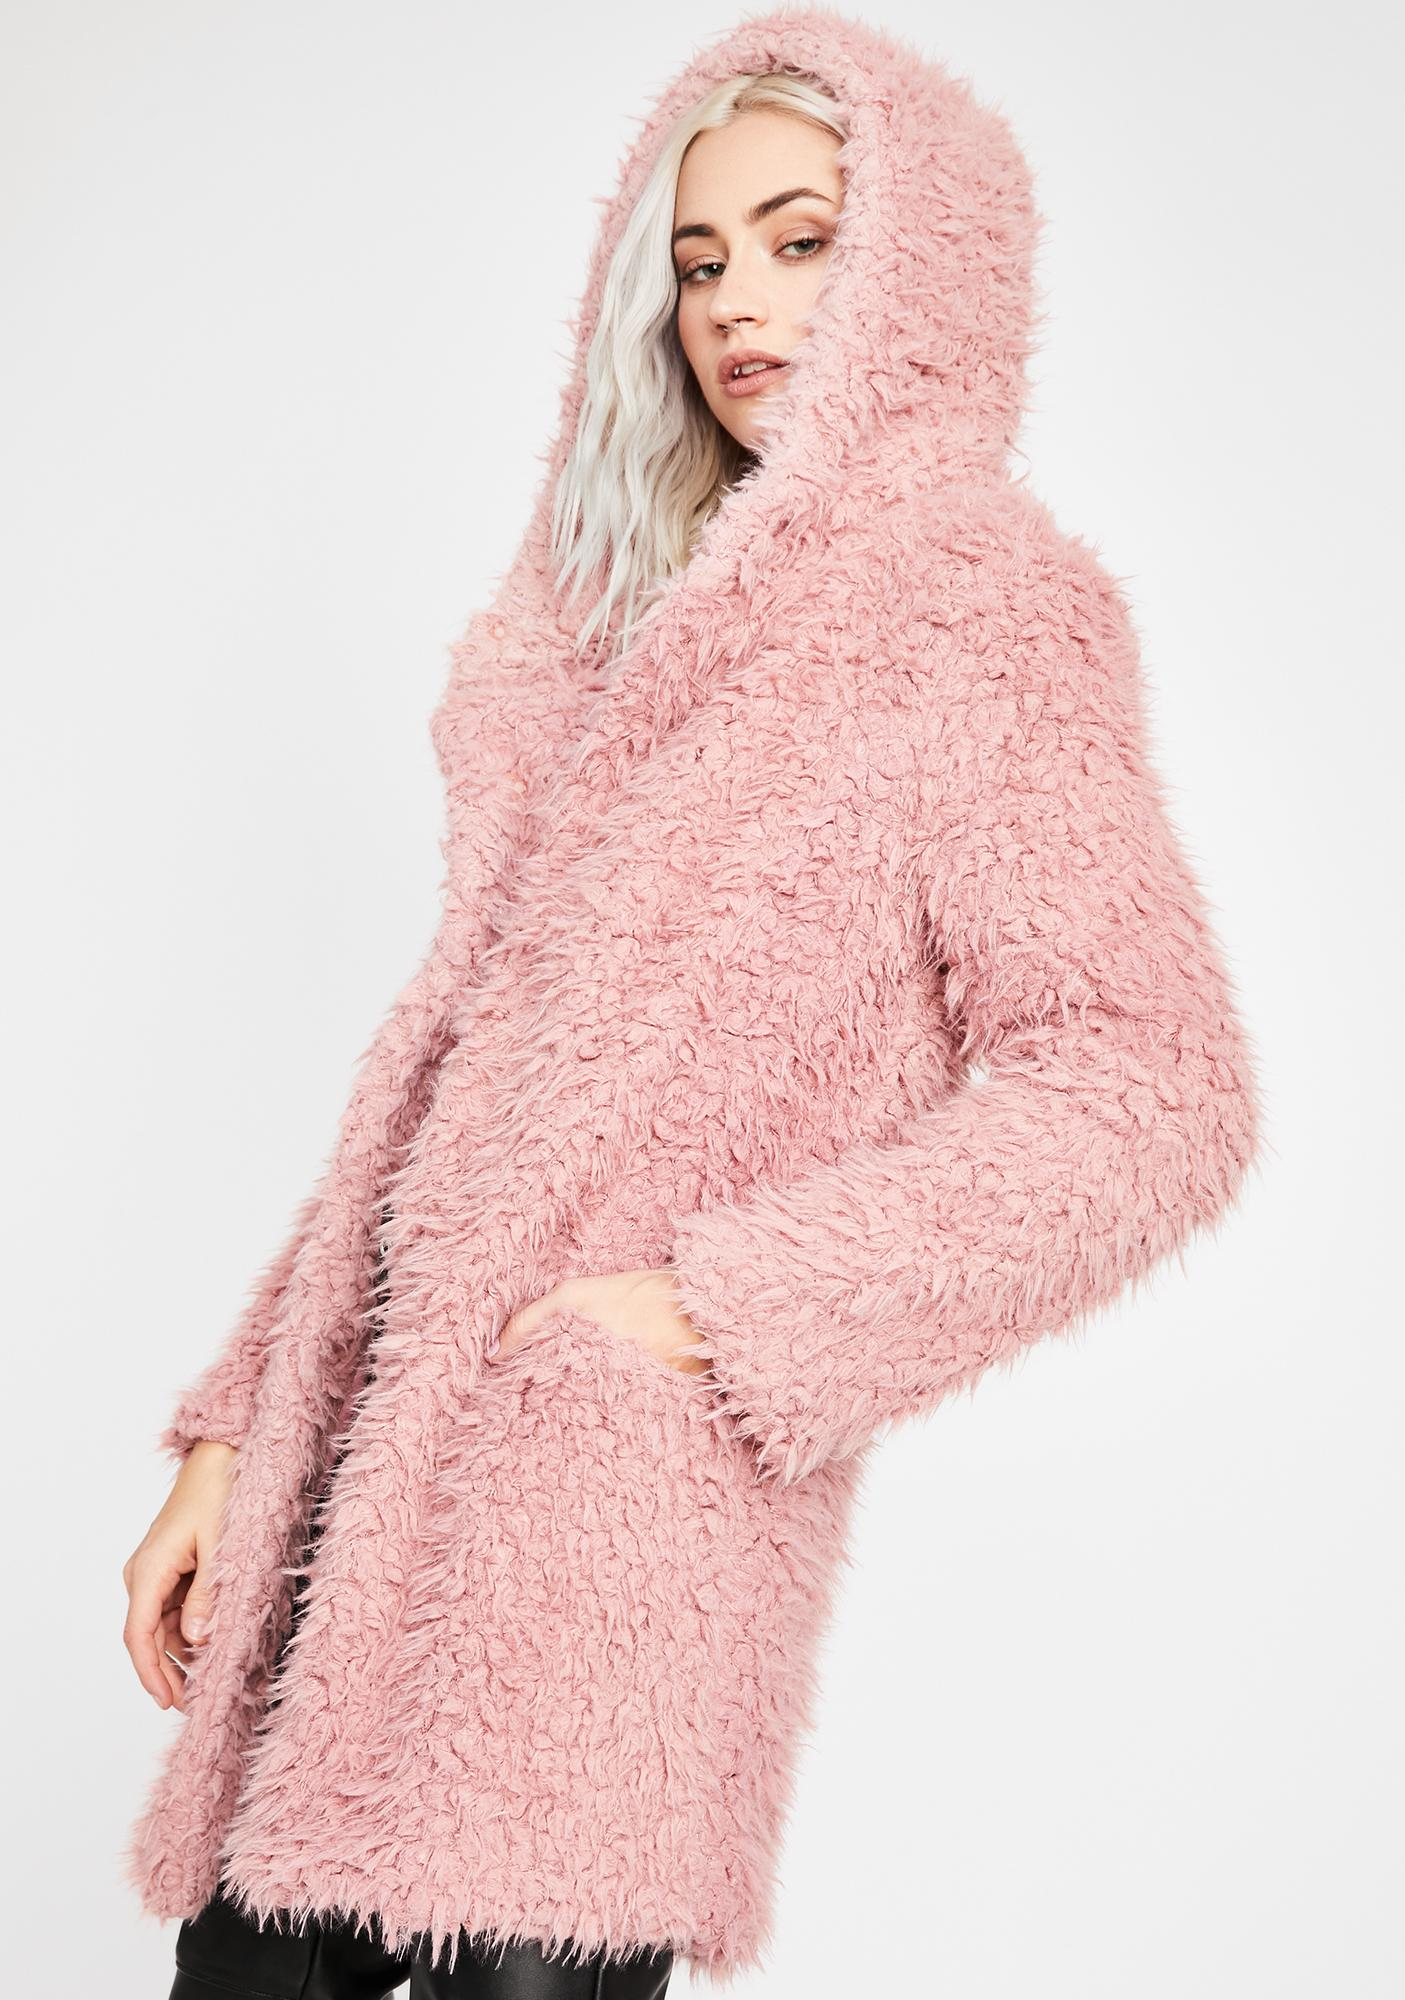 Dusty Rose Fuzzy Coat